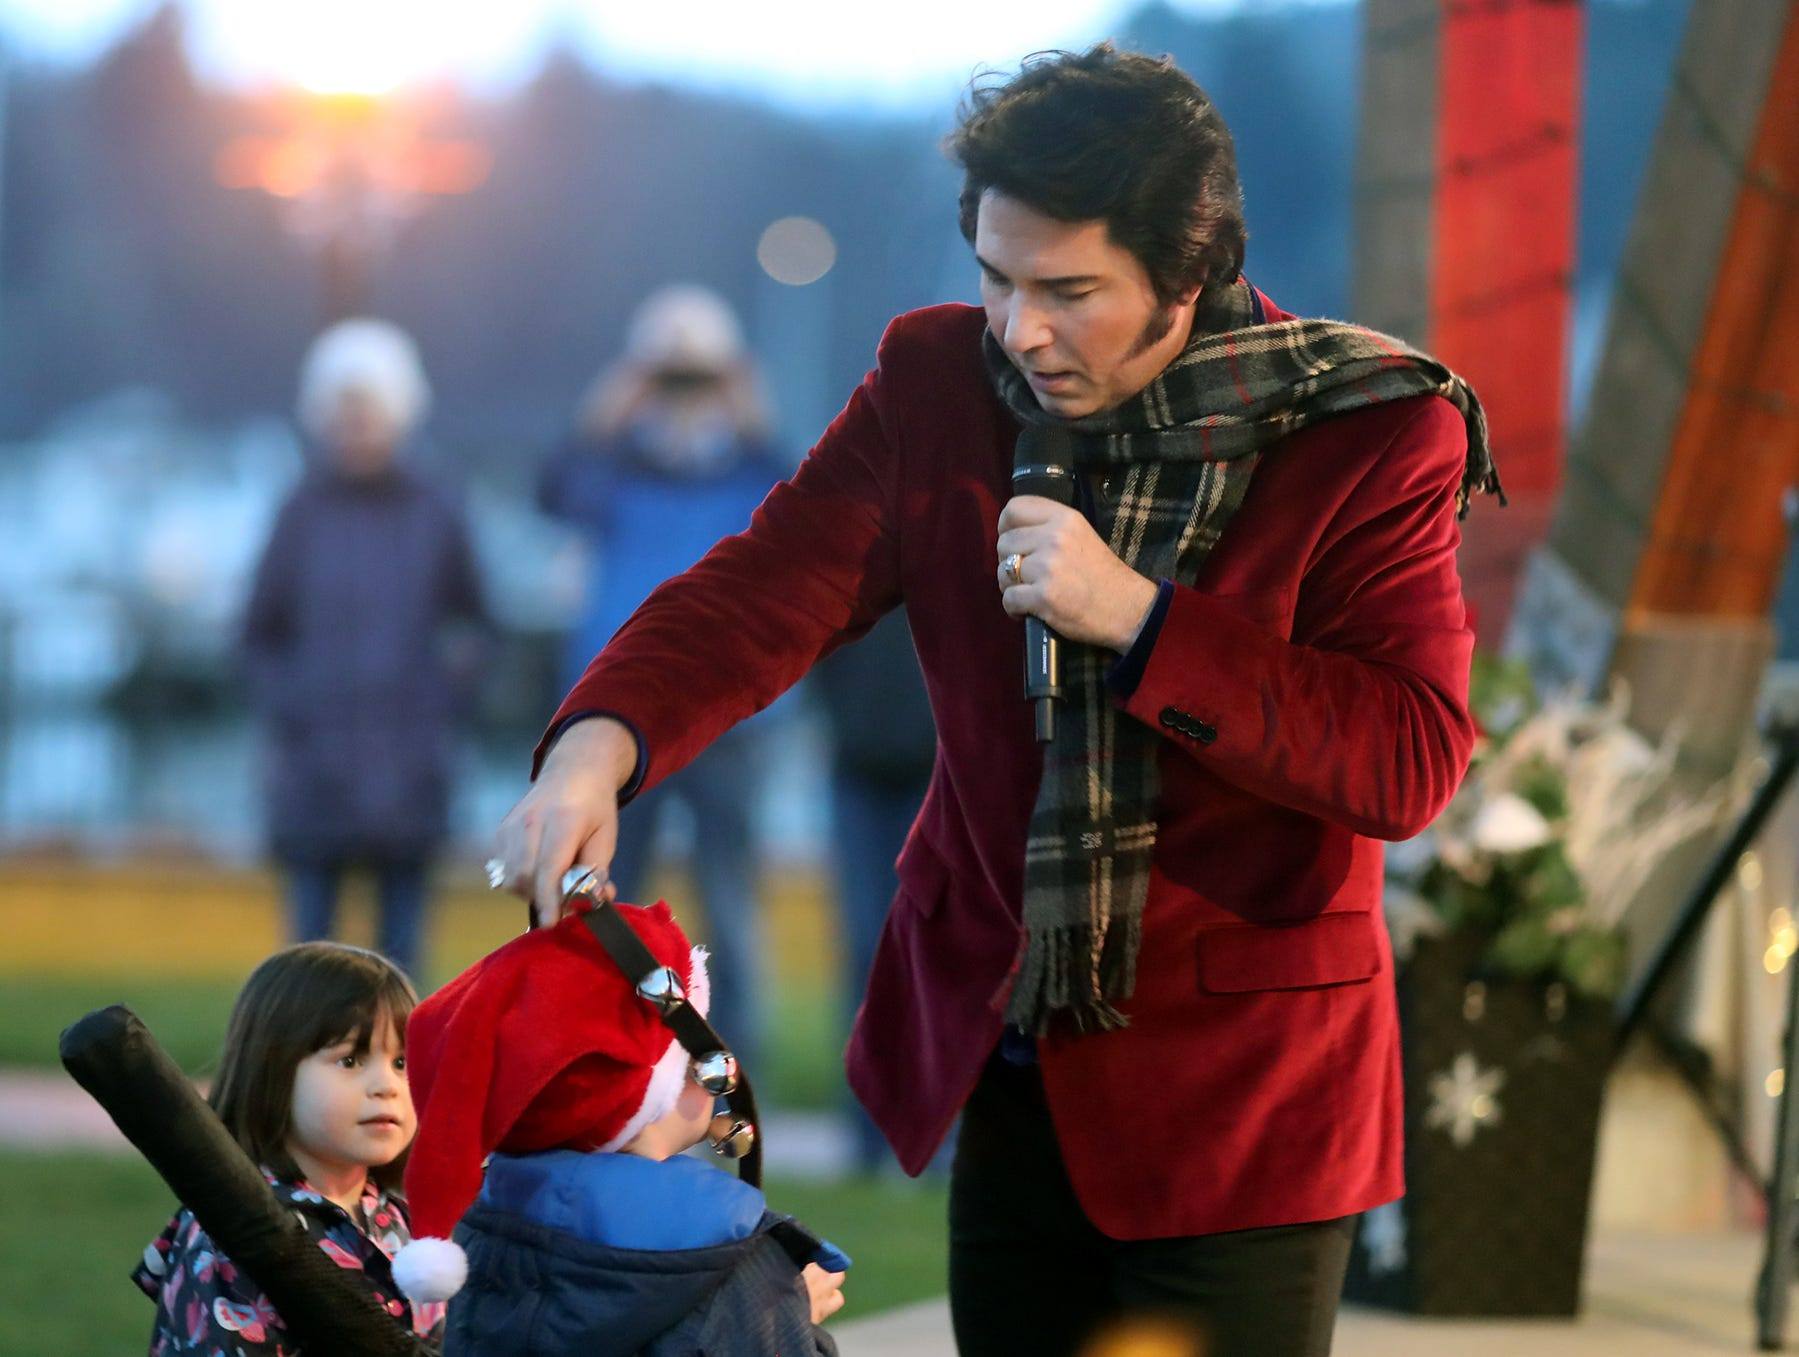 The Kingston Cove Christmas celebration on Saturday, December 1, 2018, at Mike Wallace Park in Kingston.The highlight of the event was the arrival of Santa and the Christmas tree, and park lighting. Elvis impersonator Danny Vernon puts bells on a youngster.